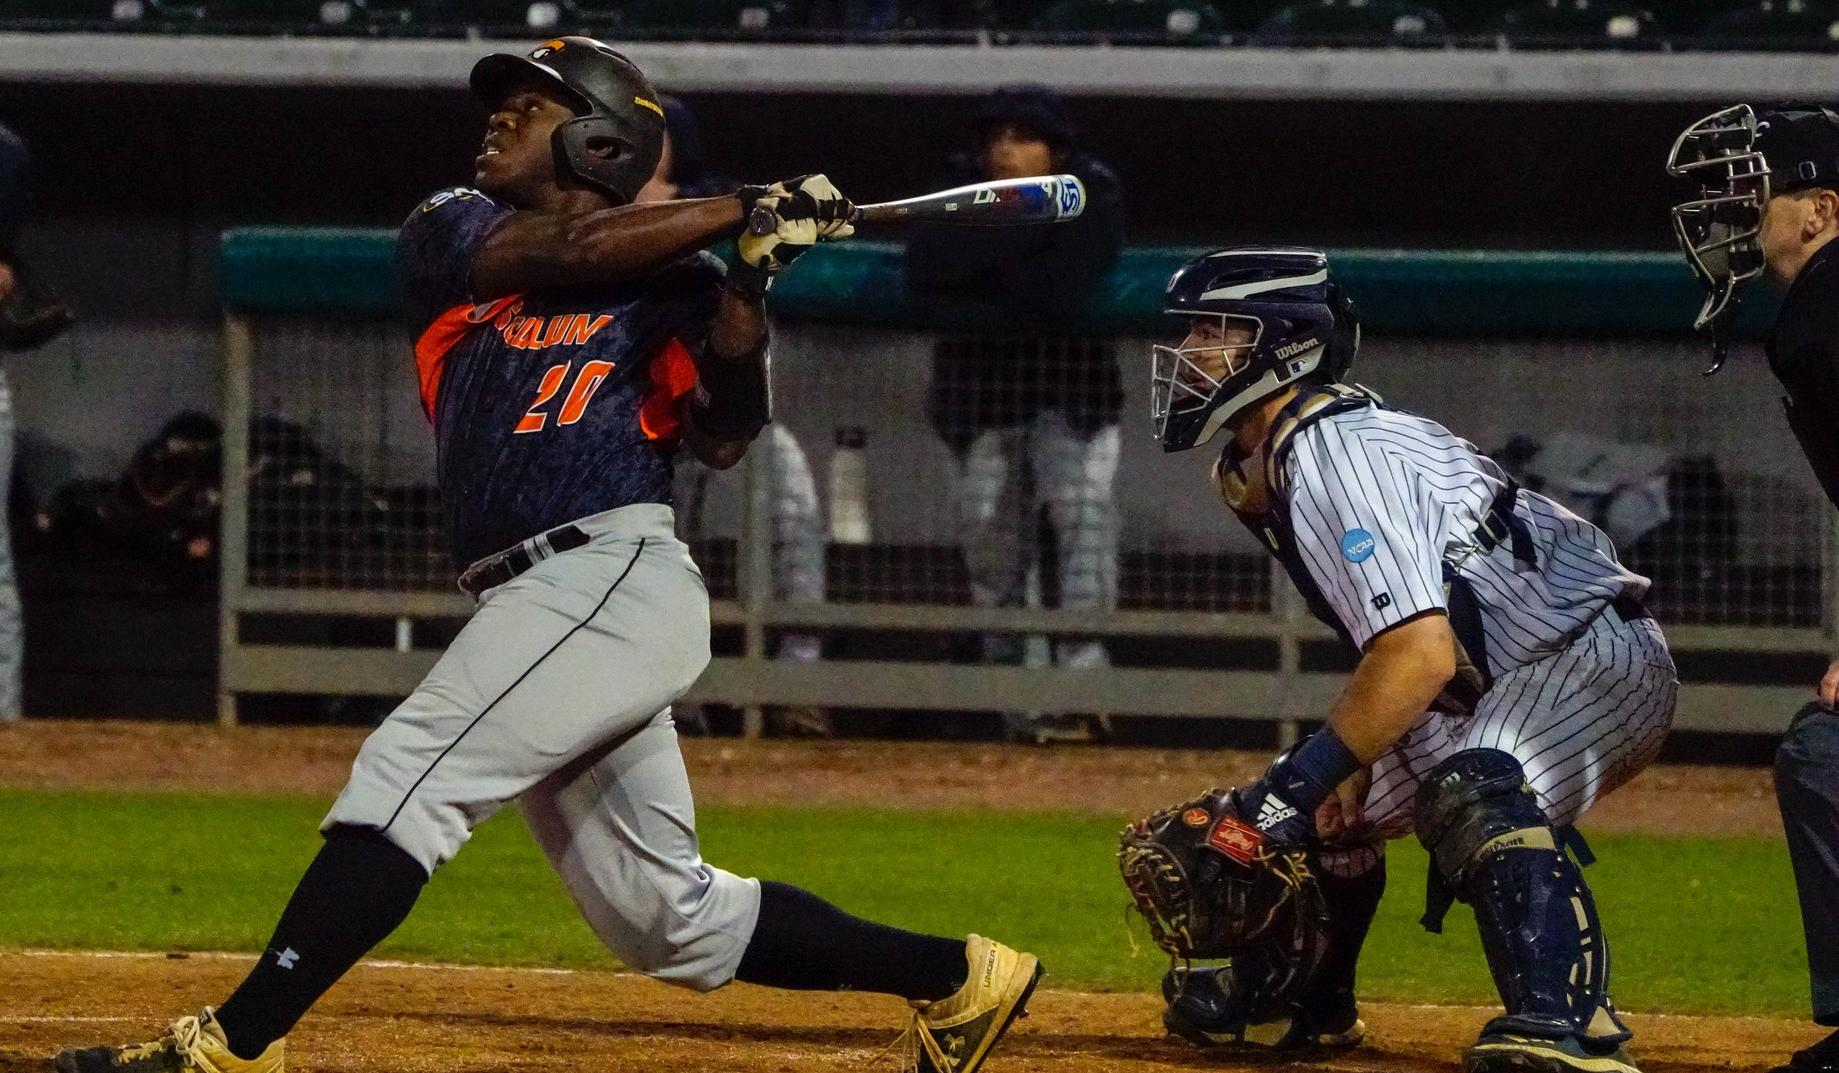 Catawba rallies to 5-4 win over Tusculum in SAC Tournament opener